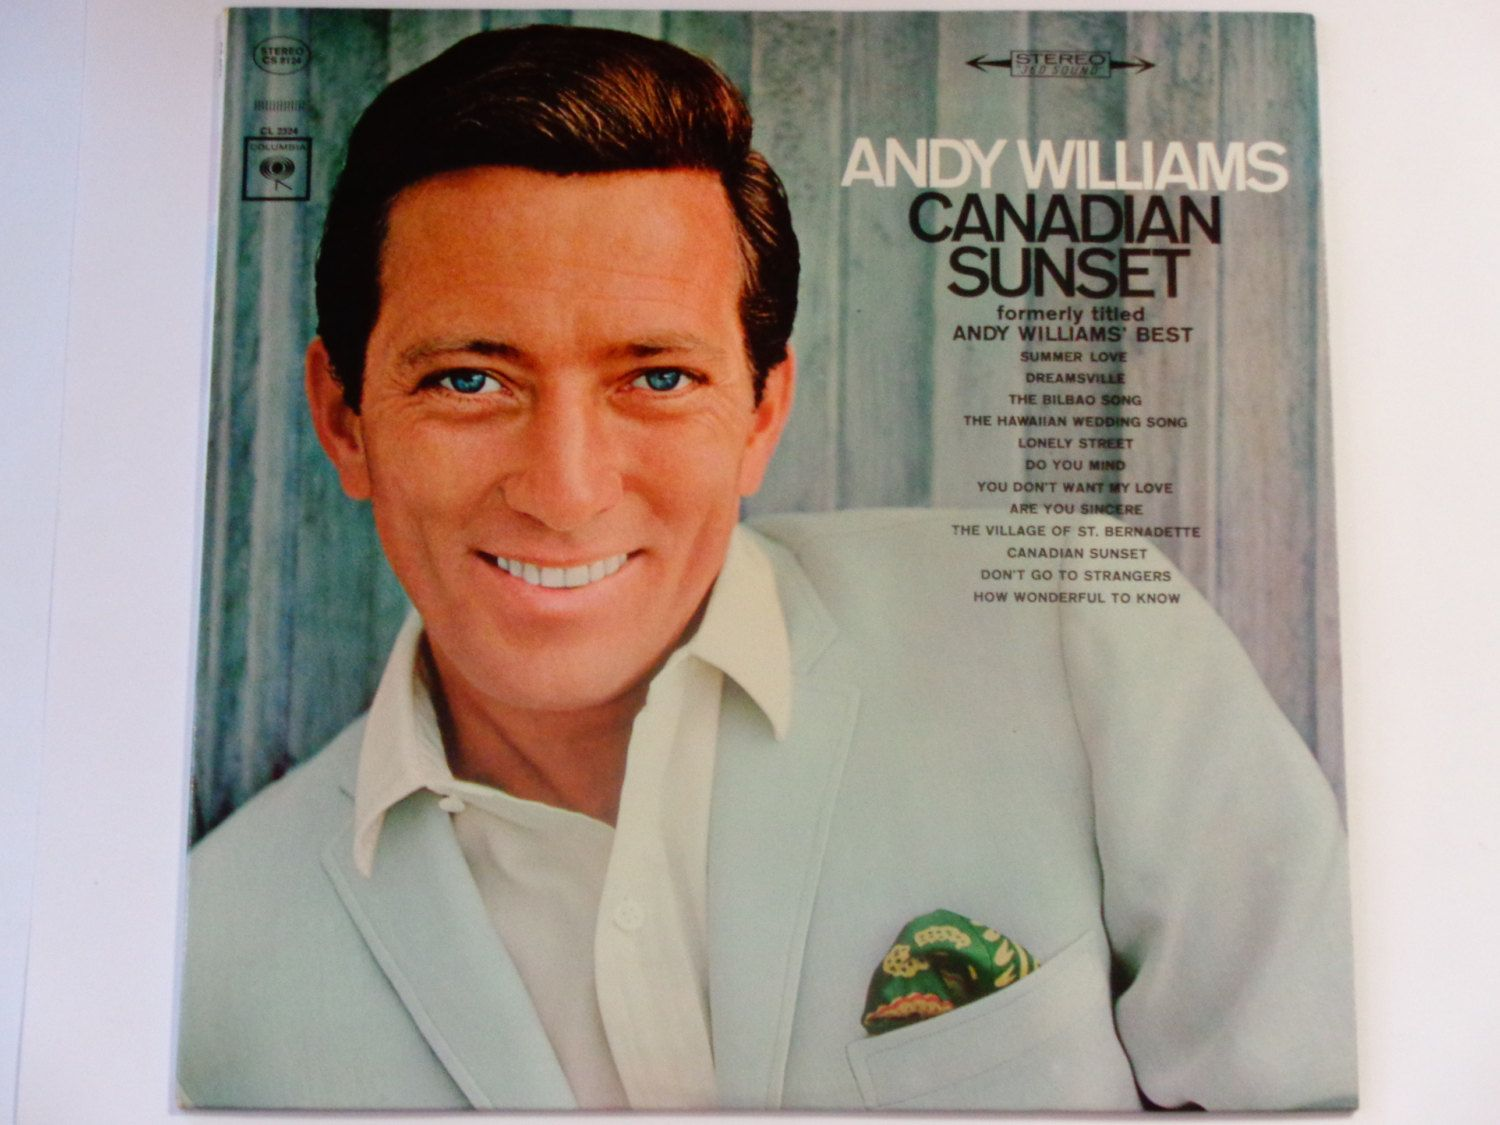 Andy Williams Canadian Sunset Quot The Hawaiian Wedding Song Quot Quot Are You Sincere Quot Colum Andy Williams Try To Remember Lyrics Record Album